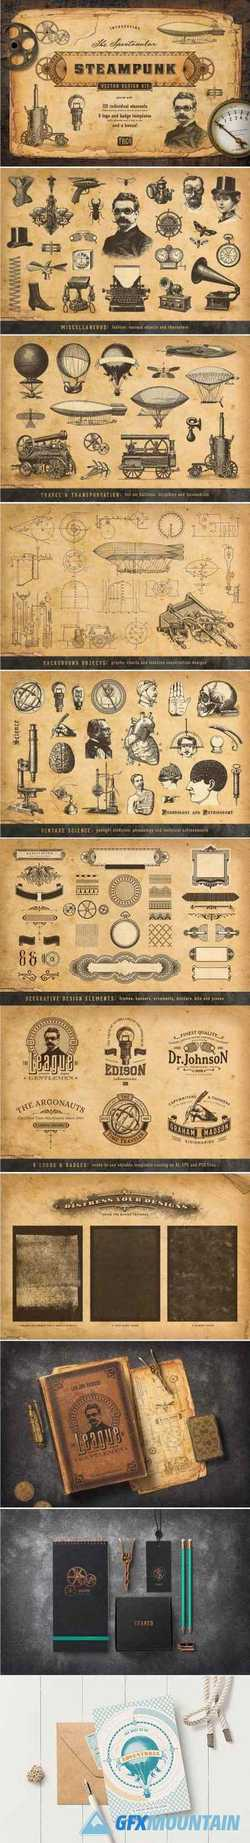 THE STEAMPUNK VECTOR DESIGN KIT - 2356119